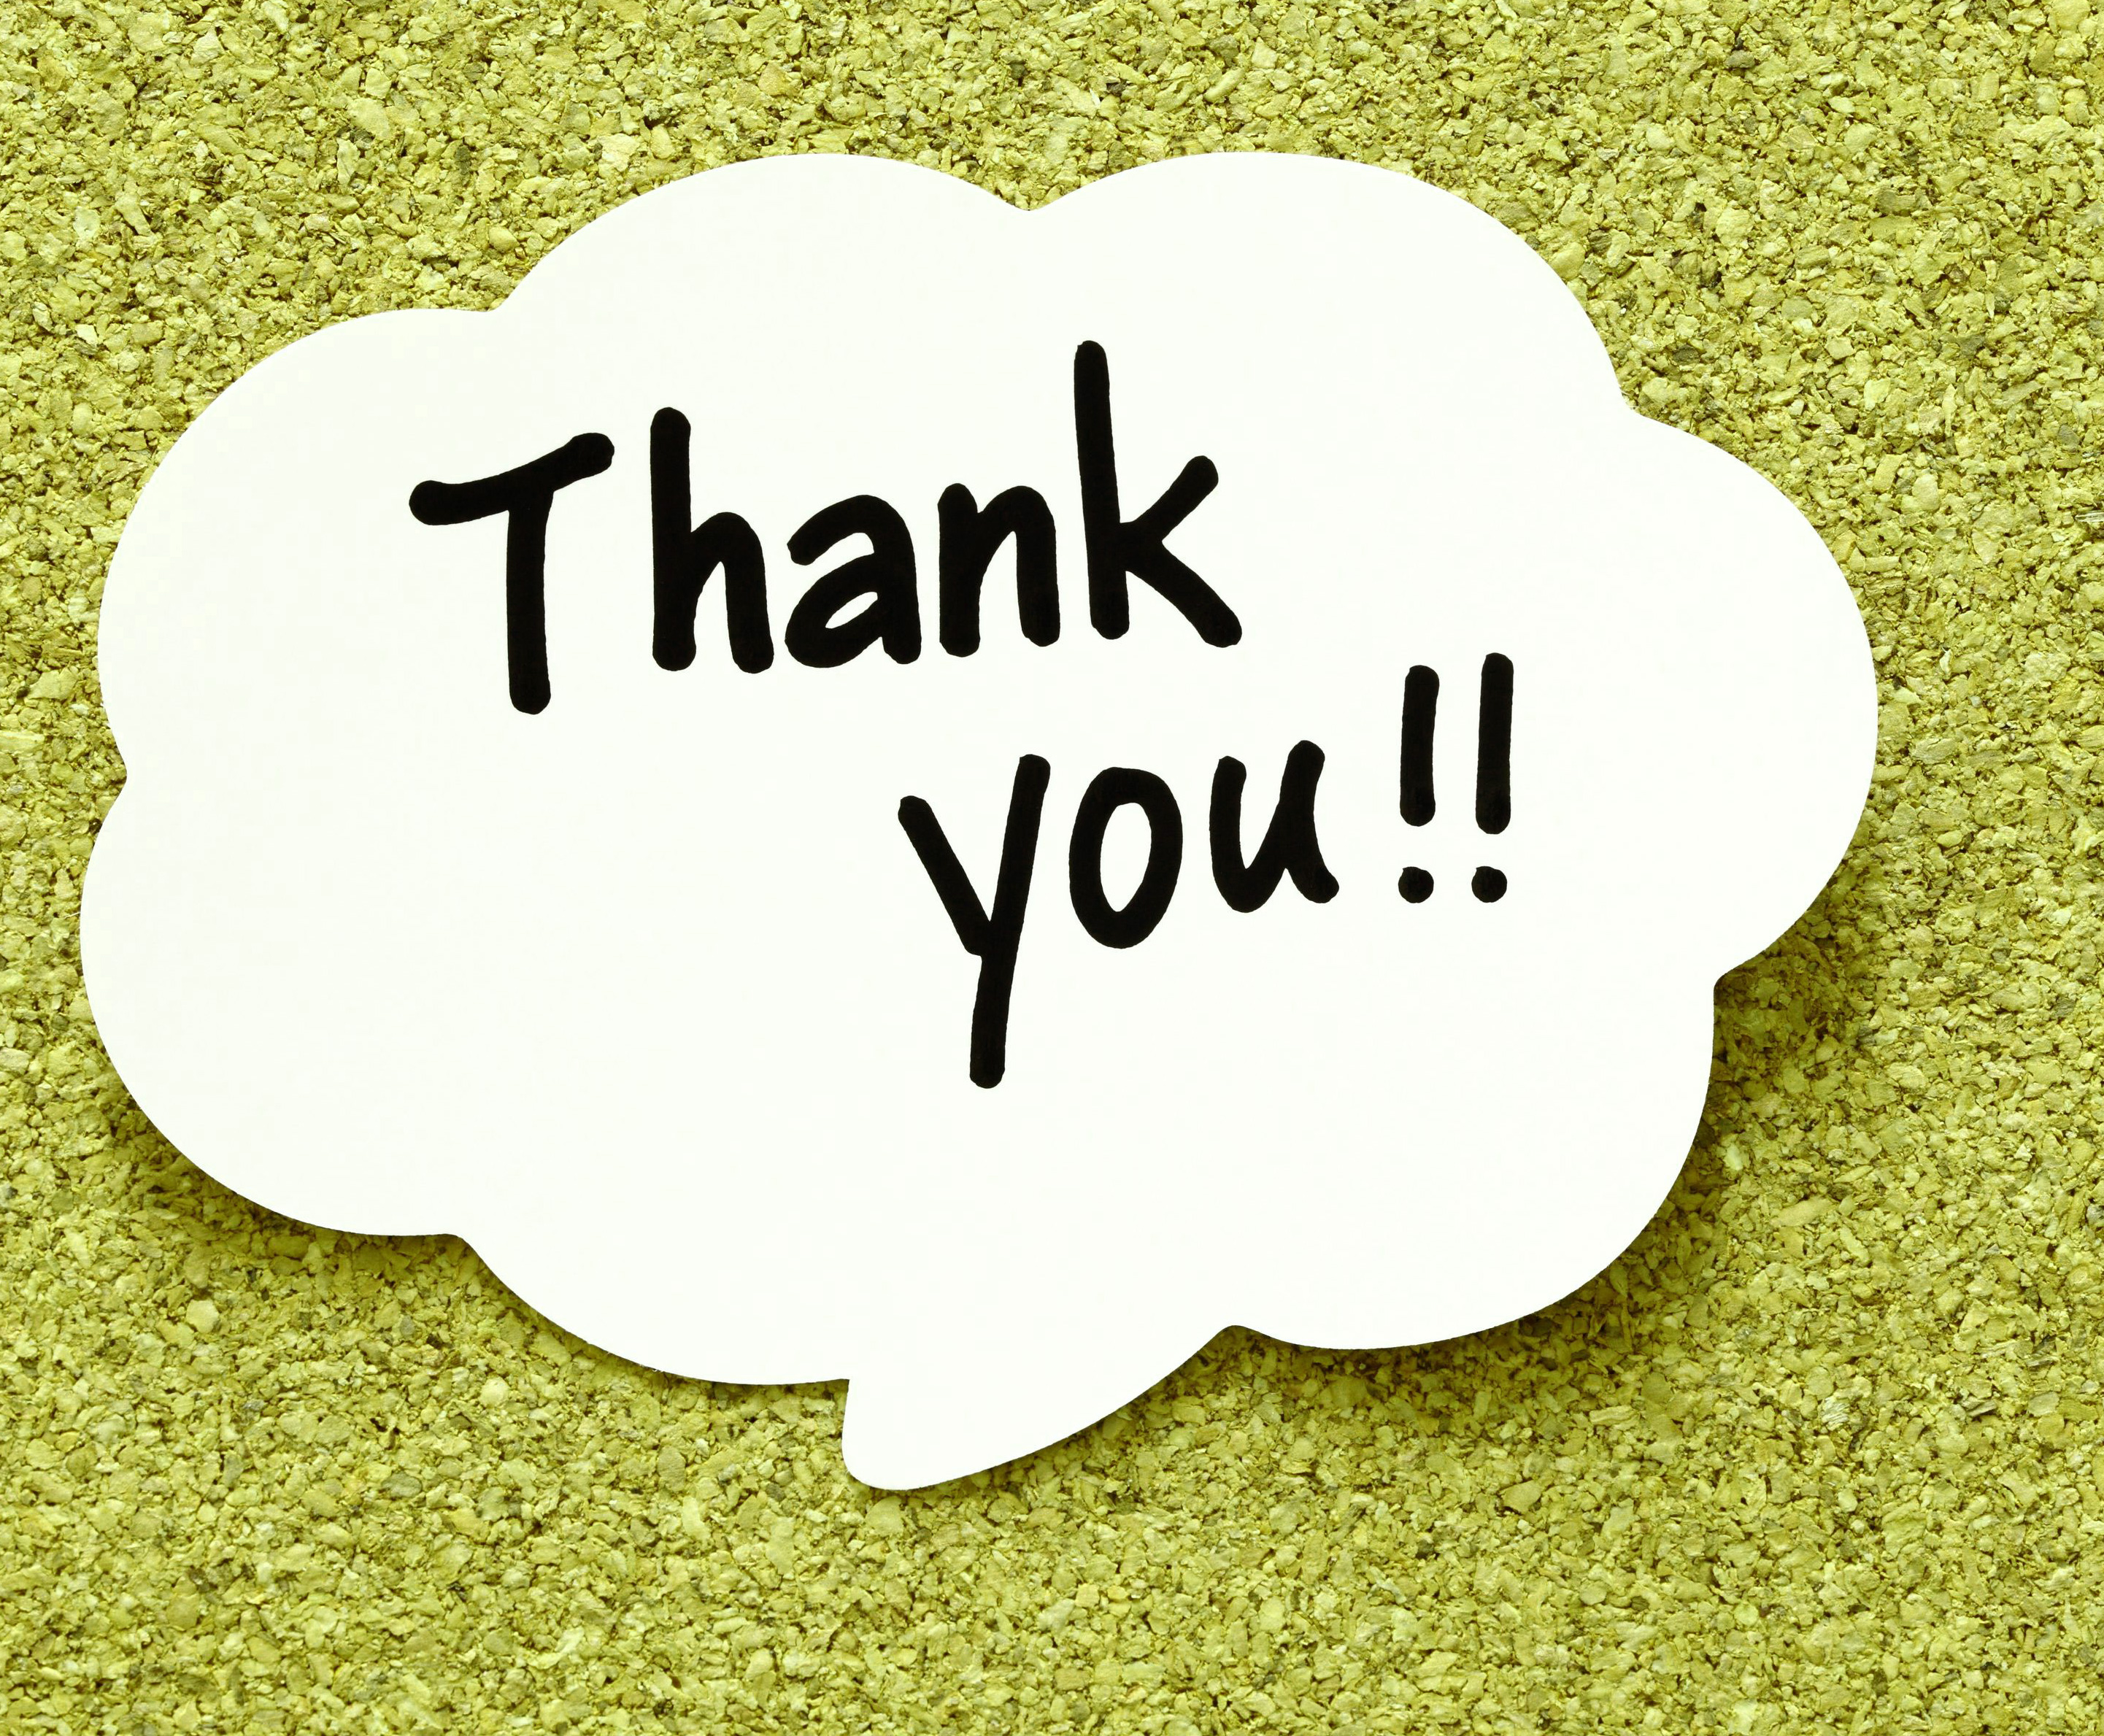 Free Thank You Images Images Pics Download Free